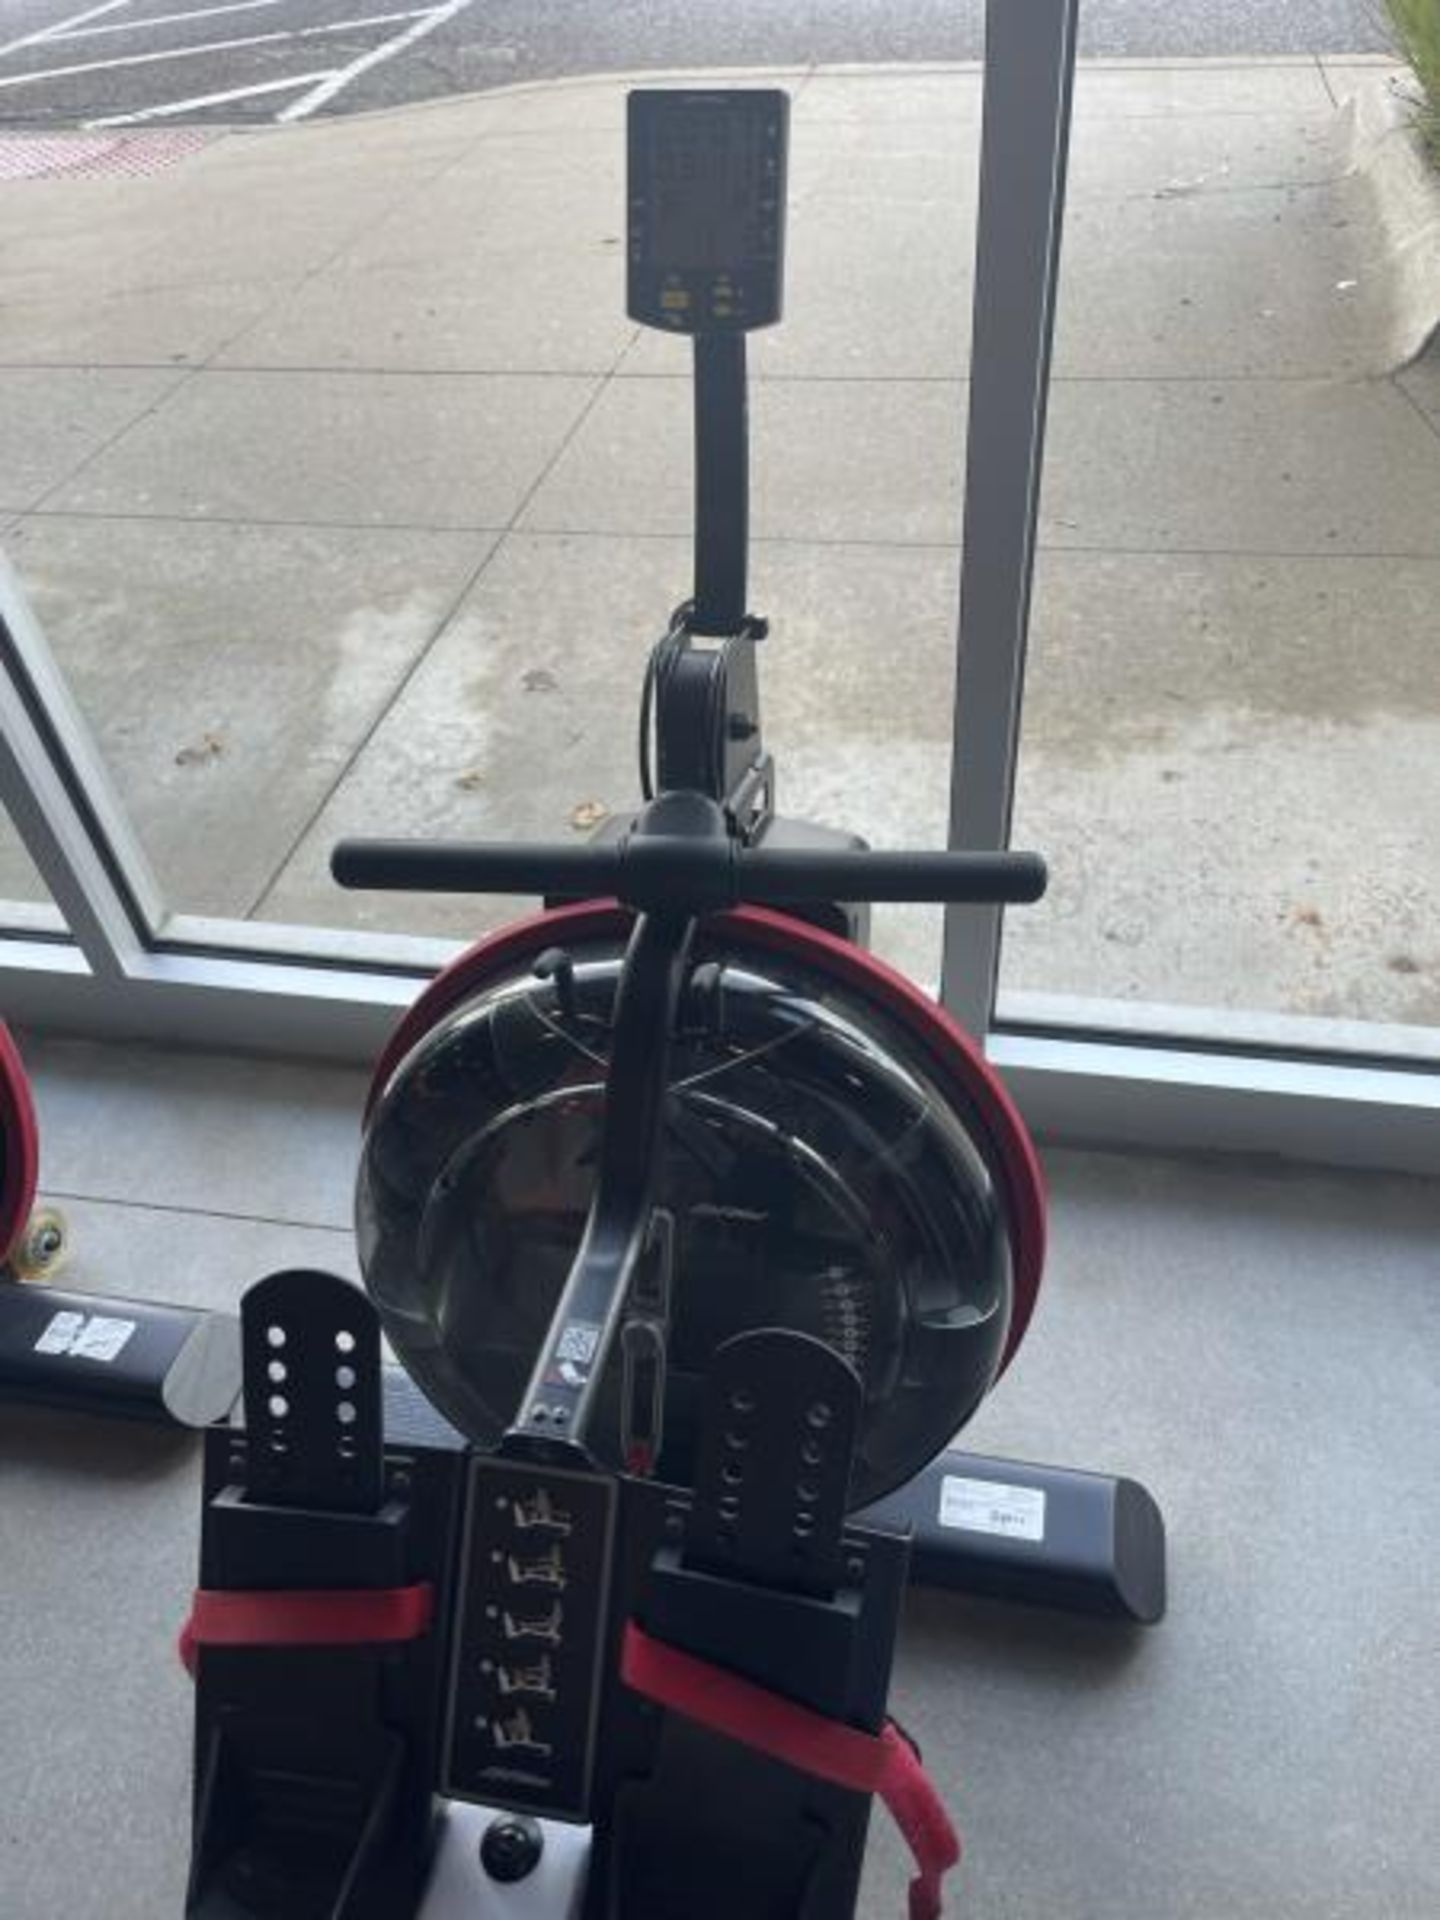 Life Fitness Rowing Machine M: GER-ALLLX-102 - Image 2 of 3